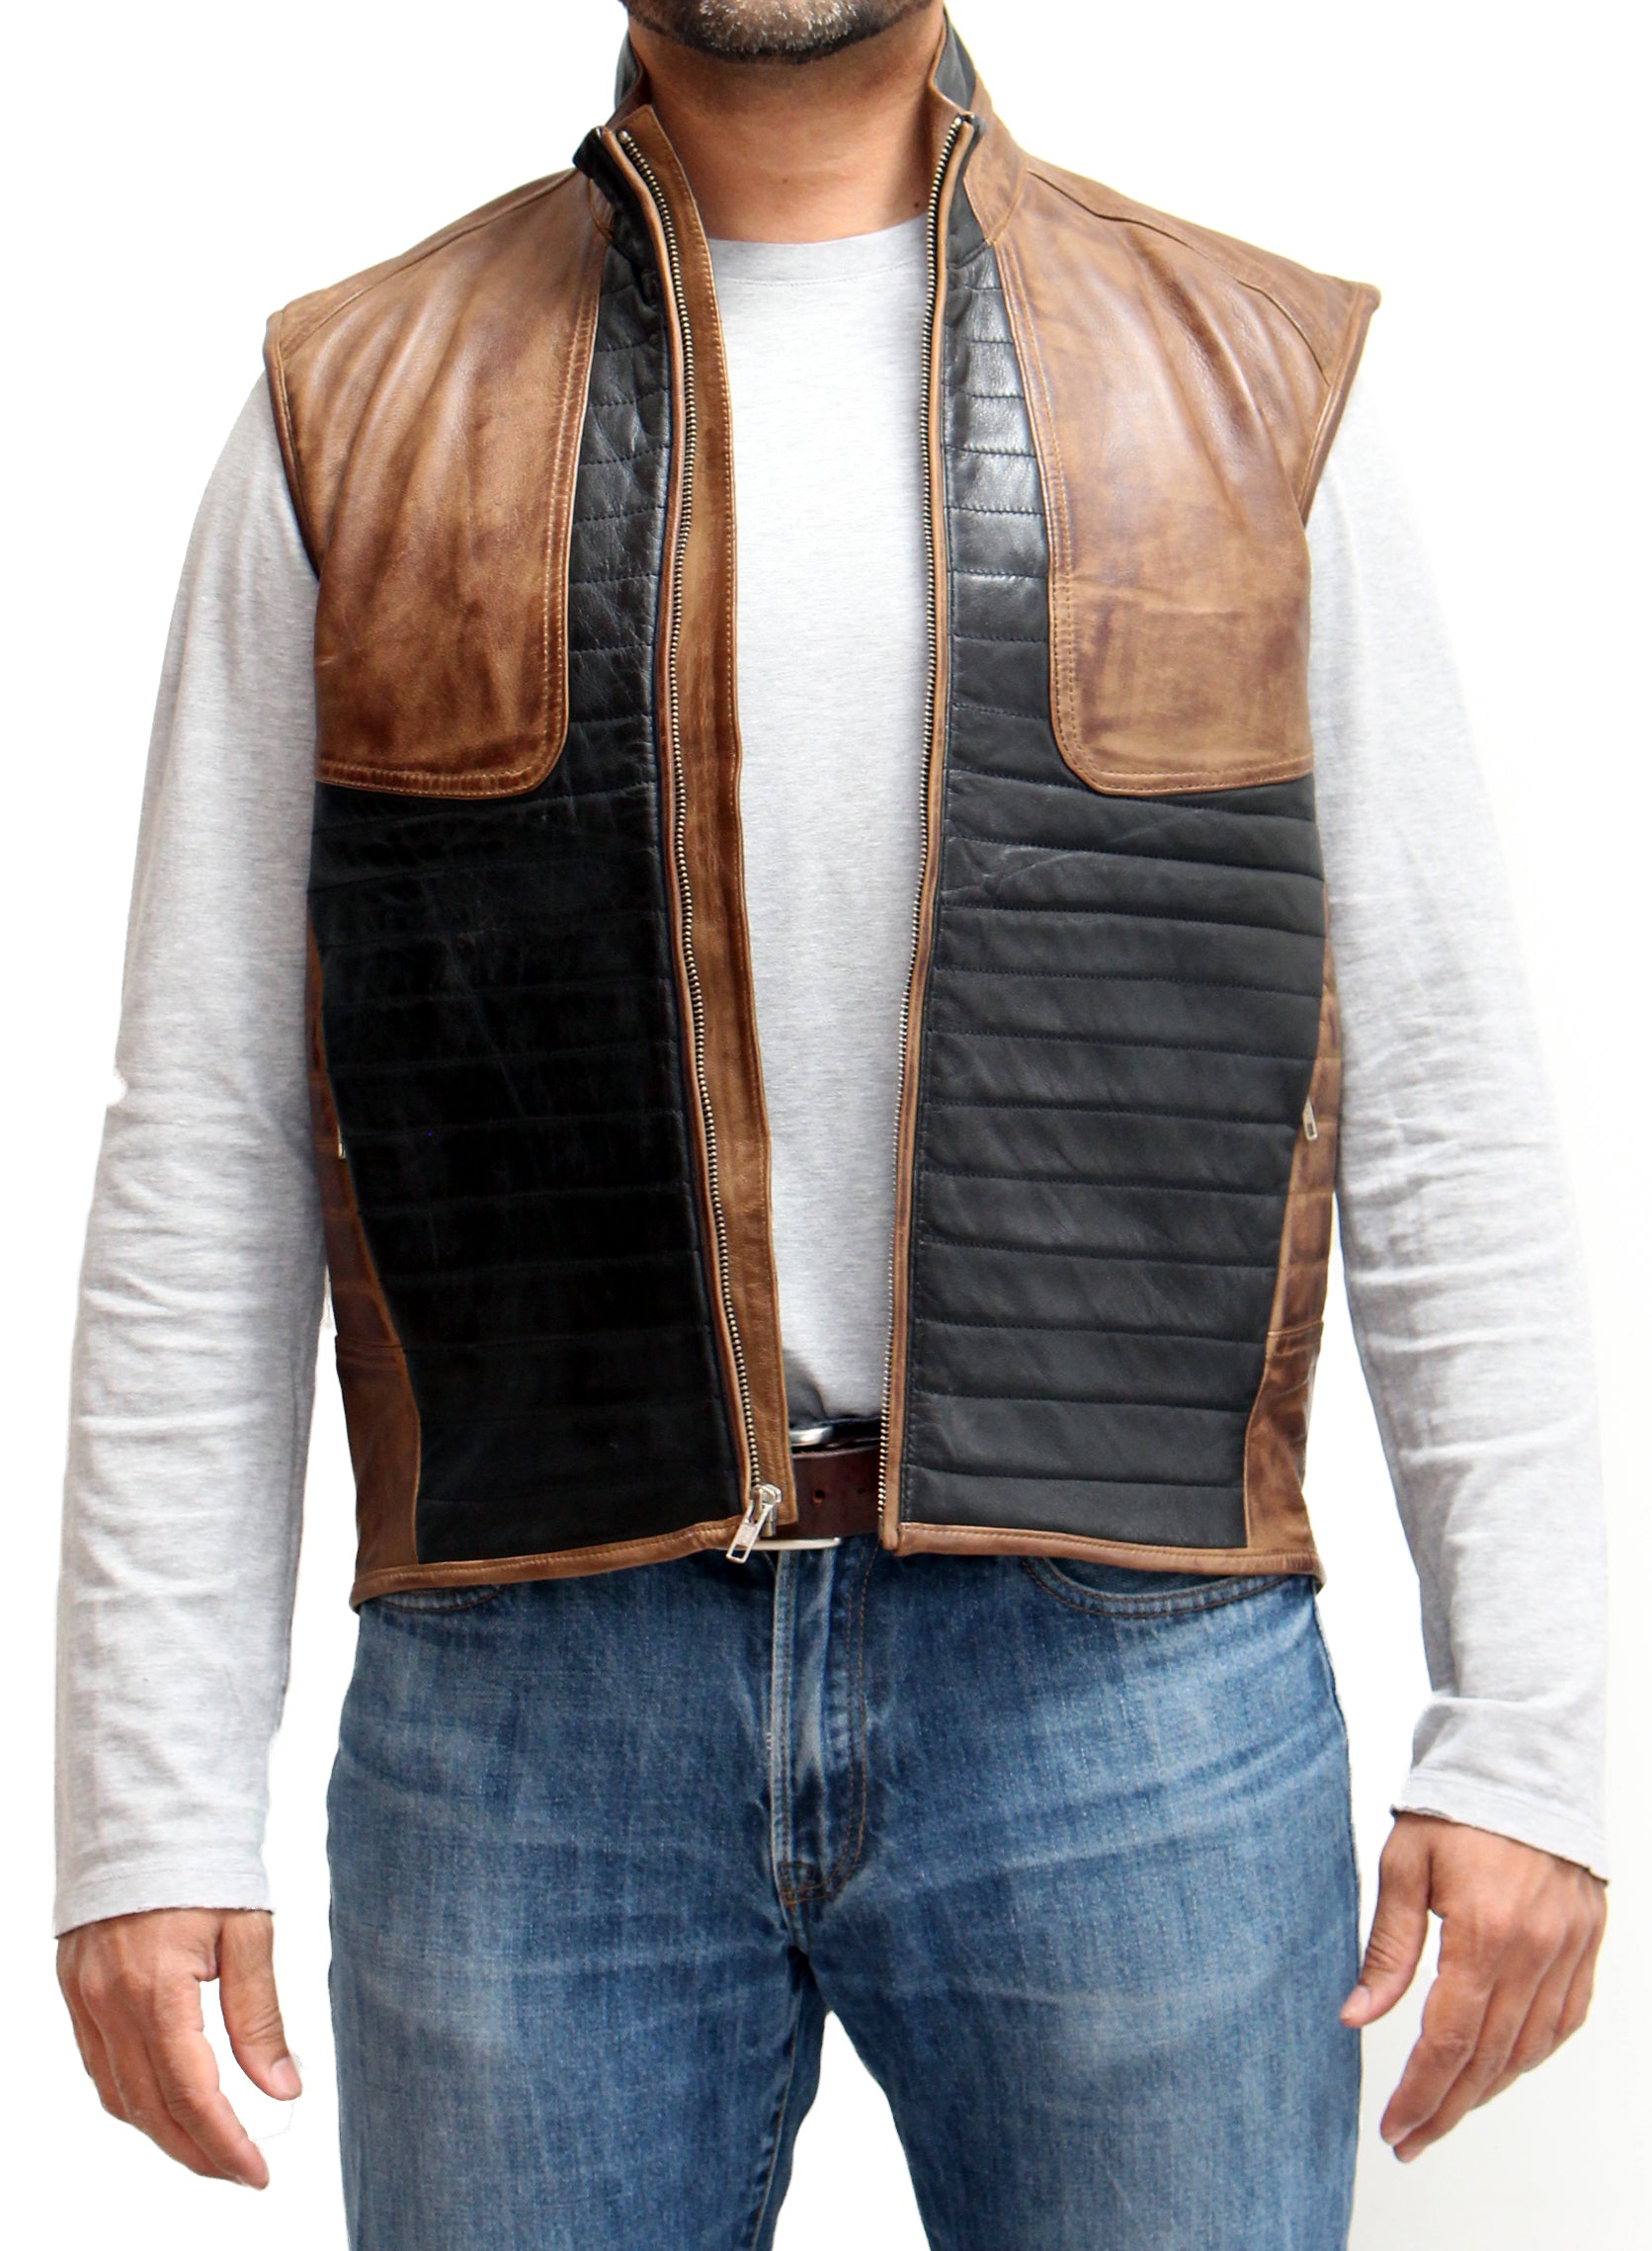 Mens Real Leather Black and Brown Ribbed Stitching Waistcoat